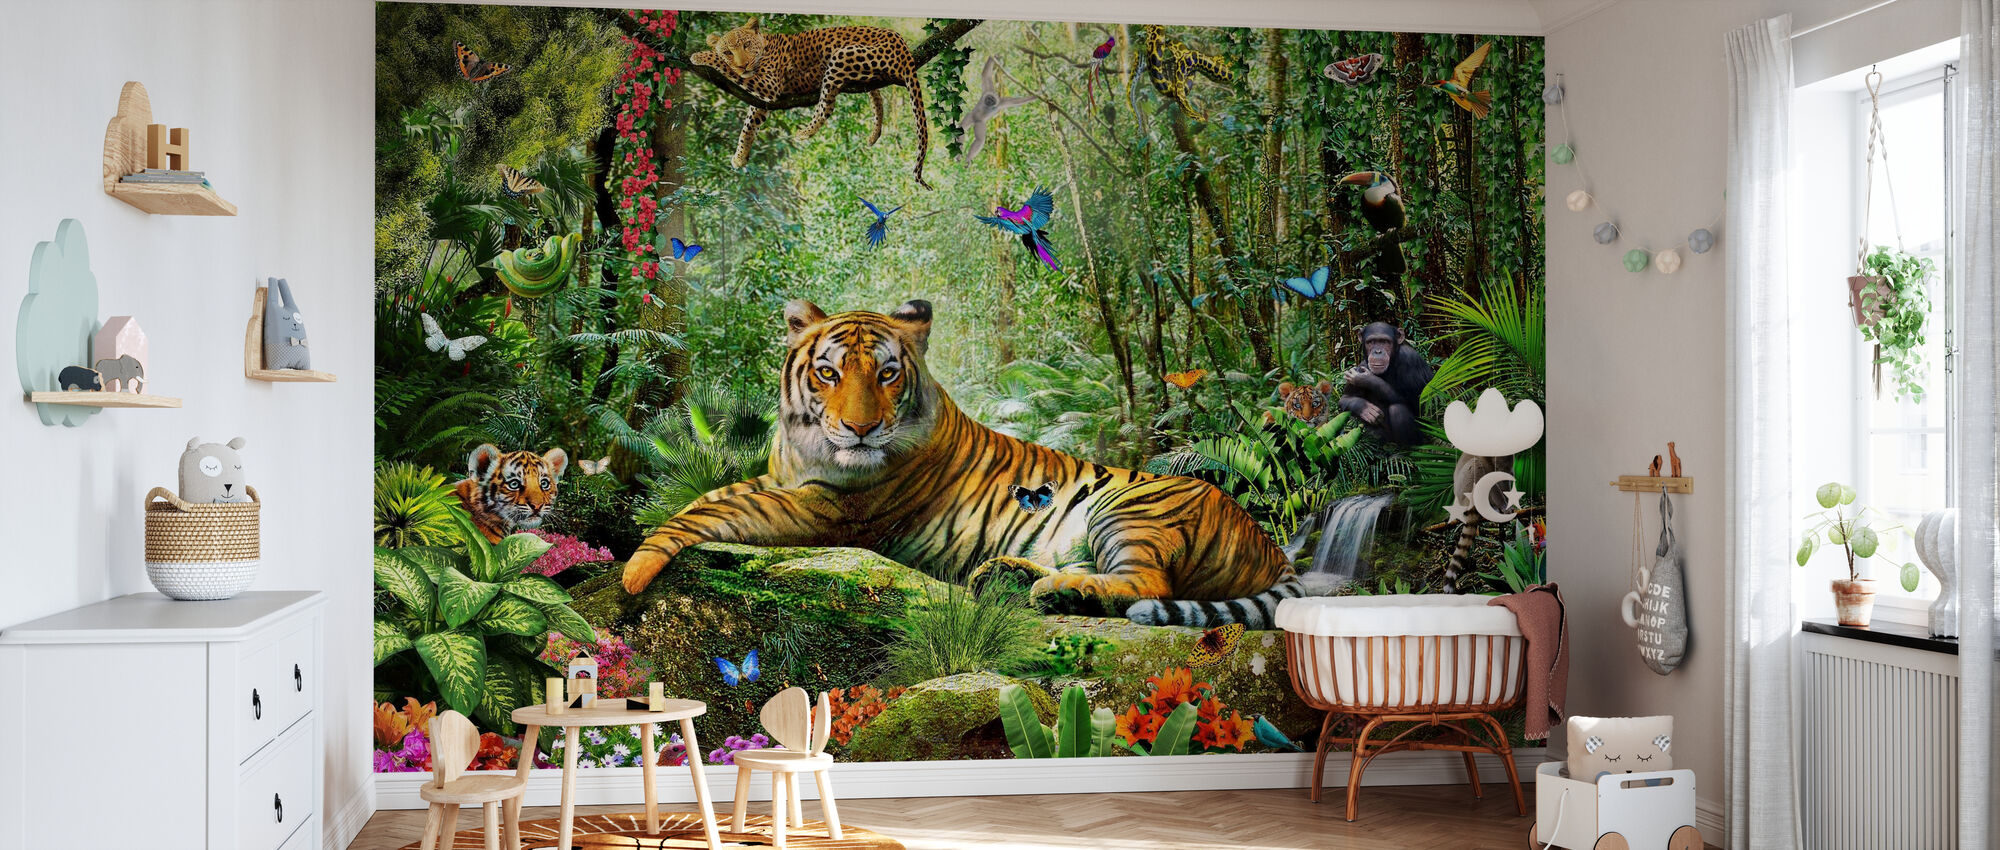 Tijger in de jungle - Behang - Babykamer